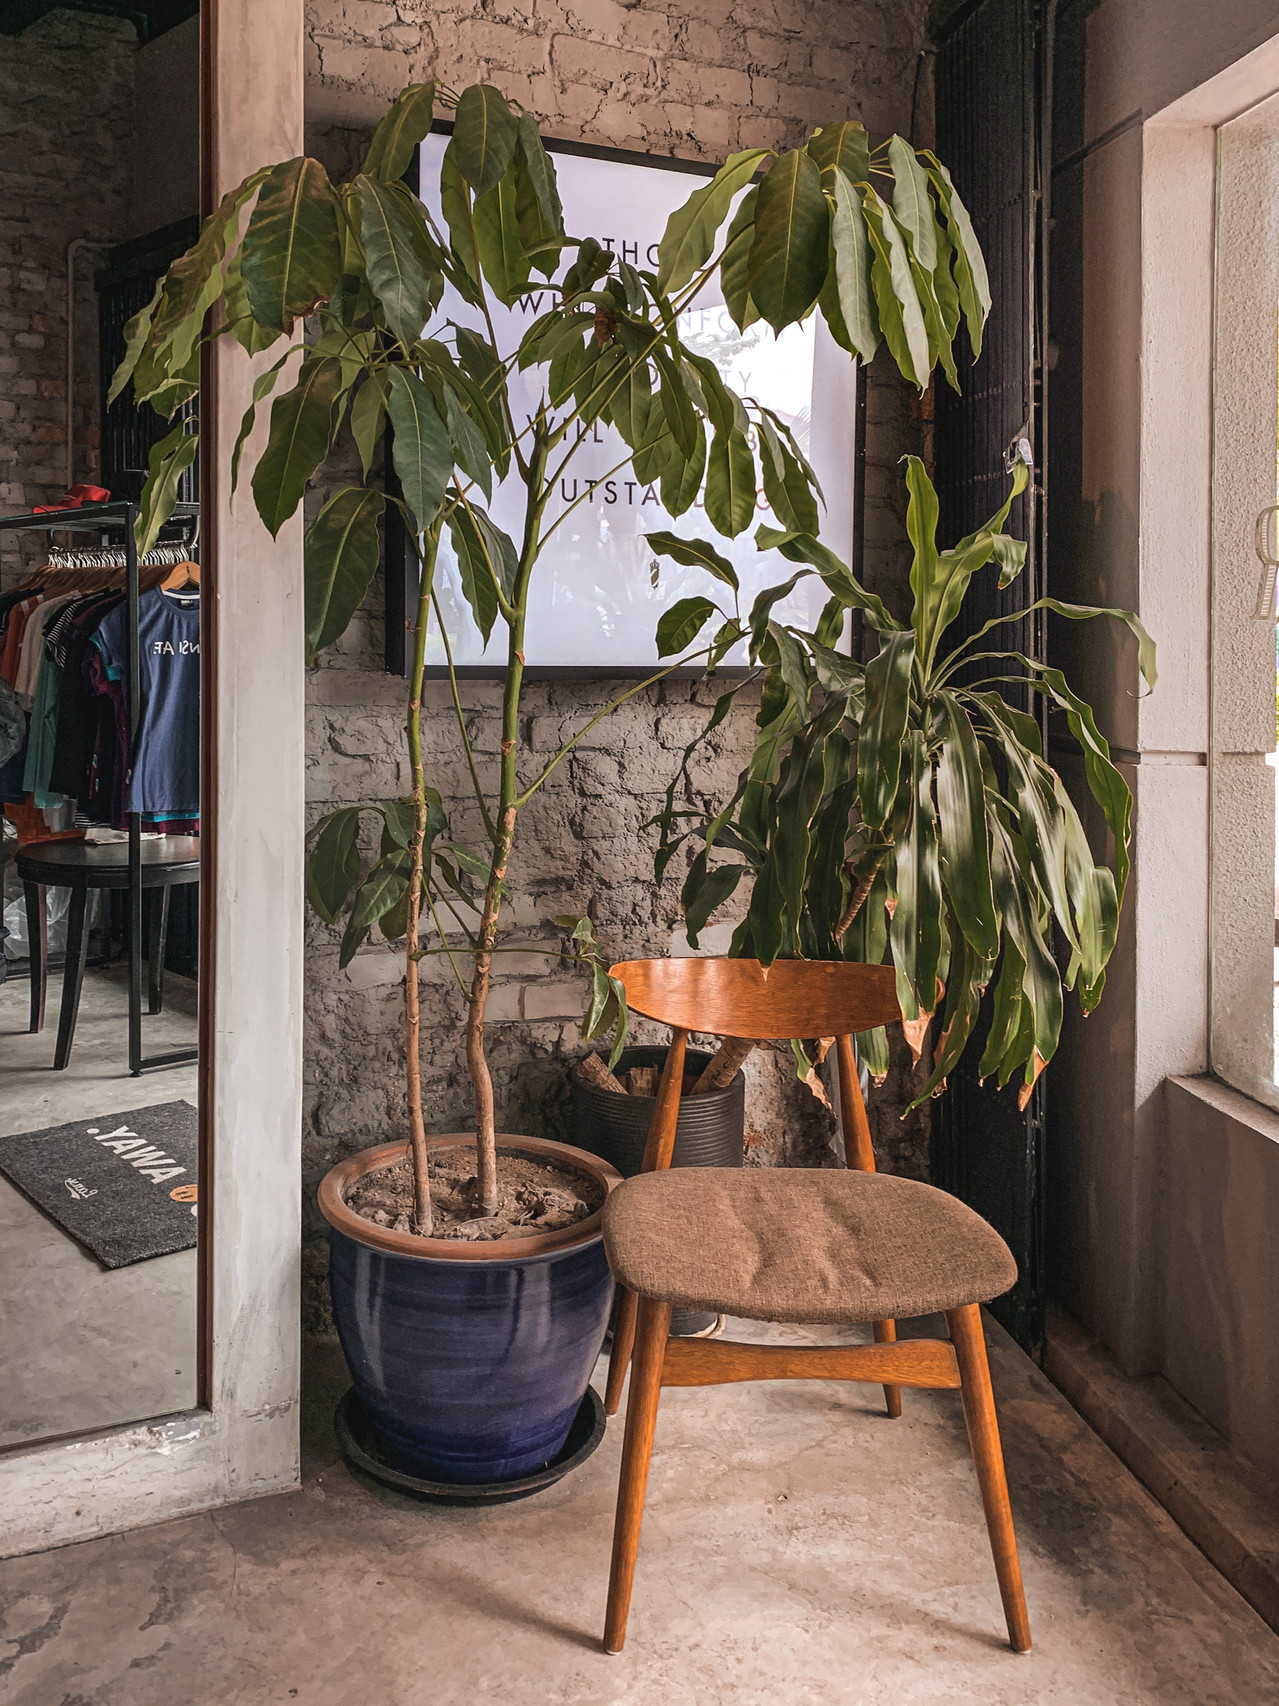 Rustic brick wall with indoor plants and chair corner, The Swagger Salon interior photography, RollingBear Travels blog.